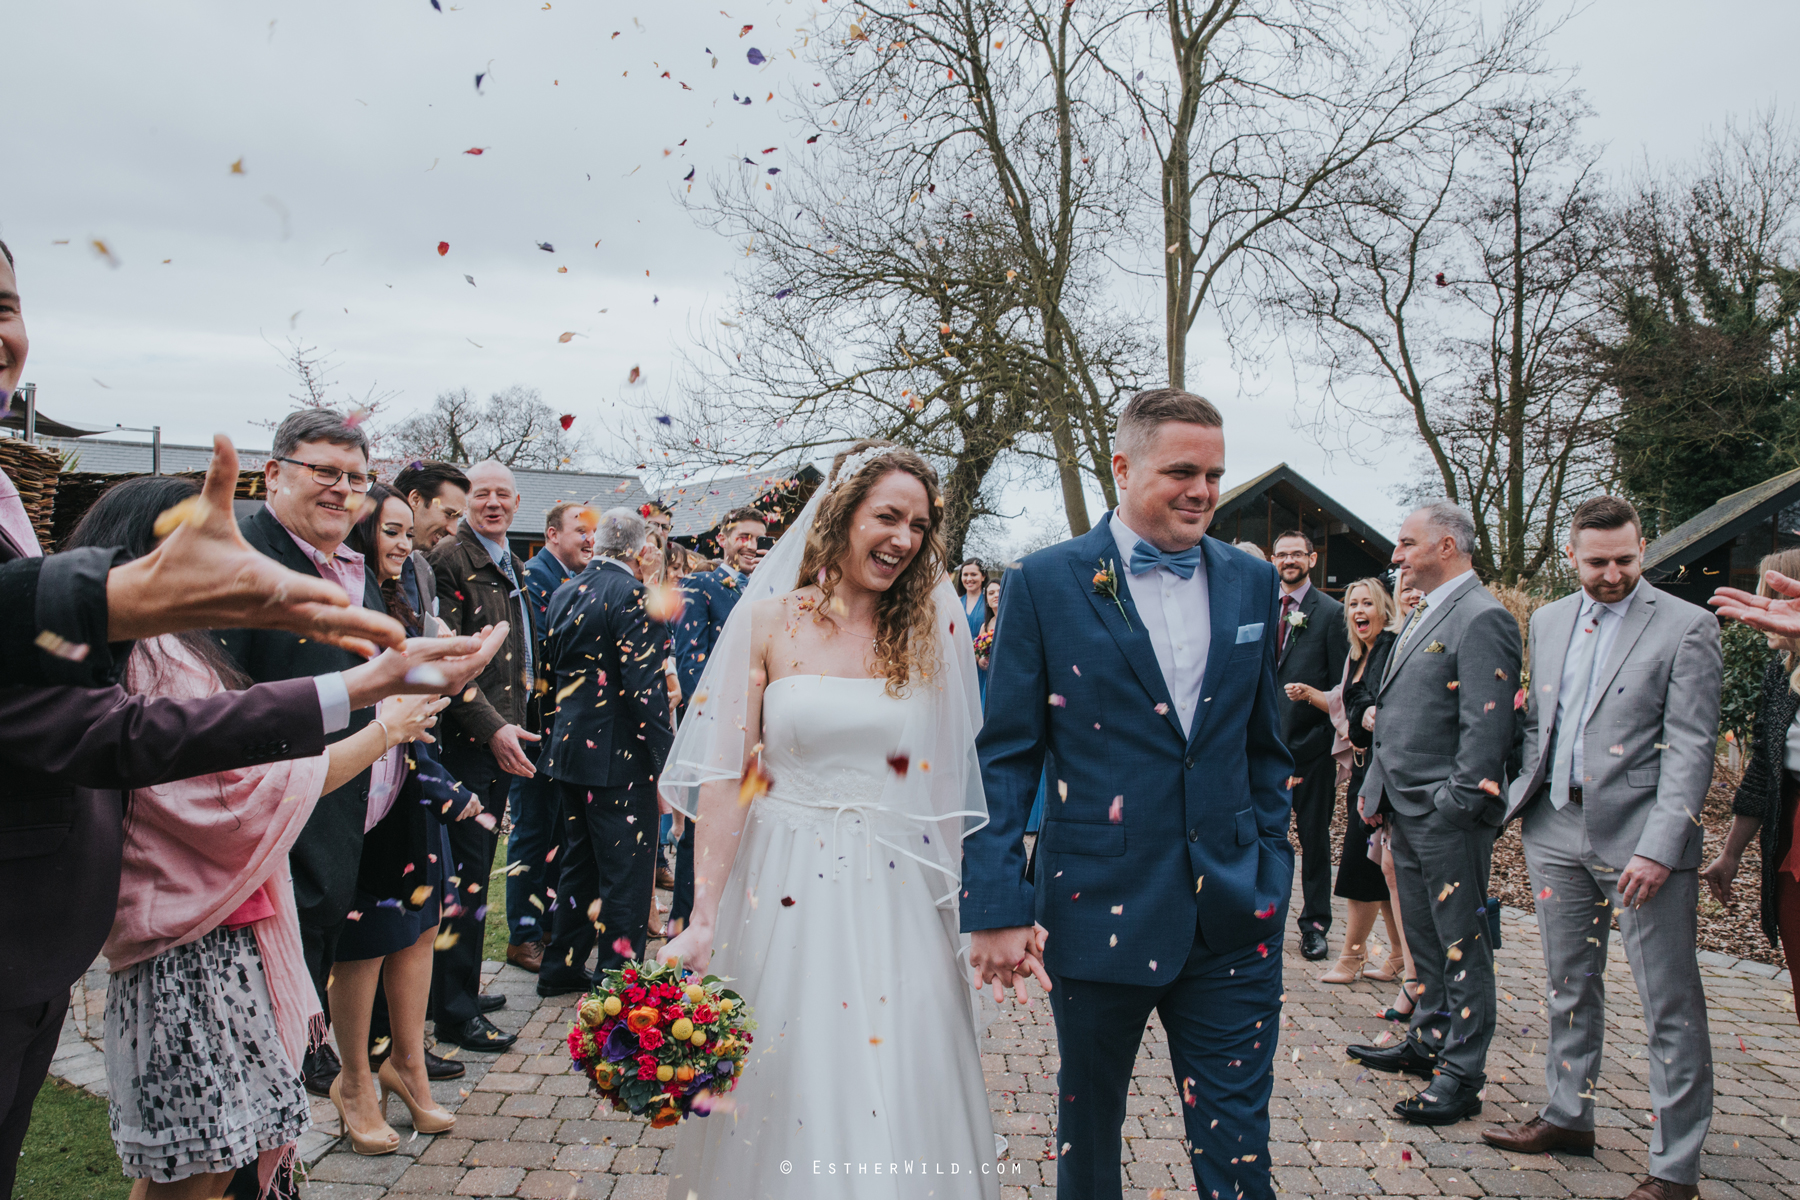 The_BoatHouse_Wedding_Venue_Ormesby_Norfolk_Broads_Boat_Wedding_Photography_Esther_Wild_Photographer_IMG_1412.jpg